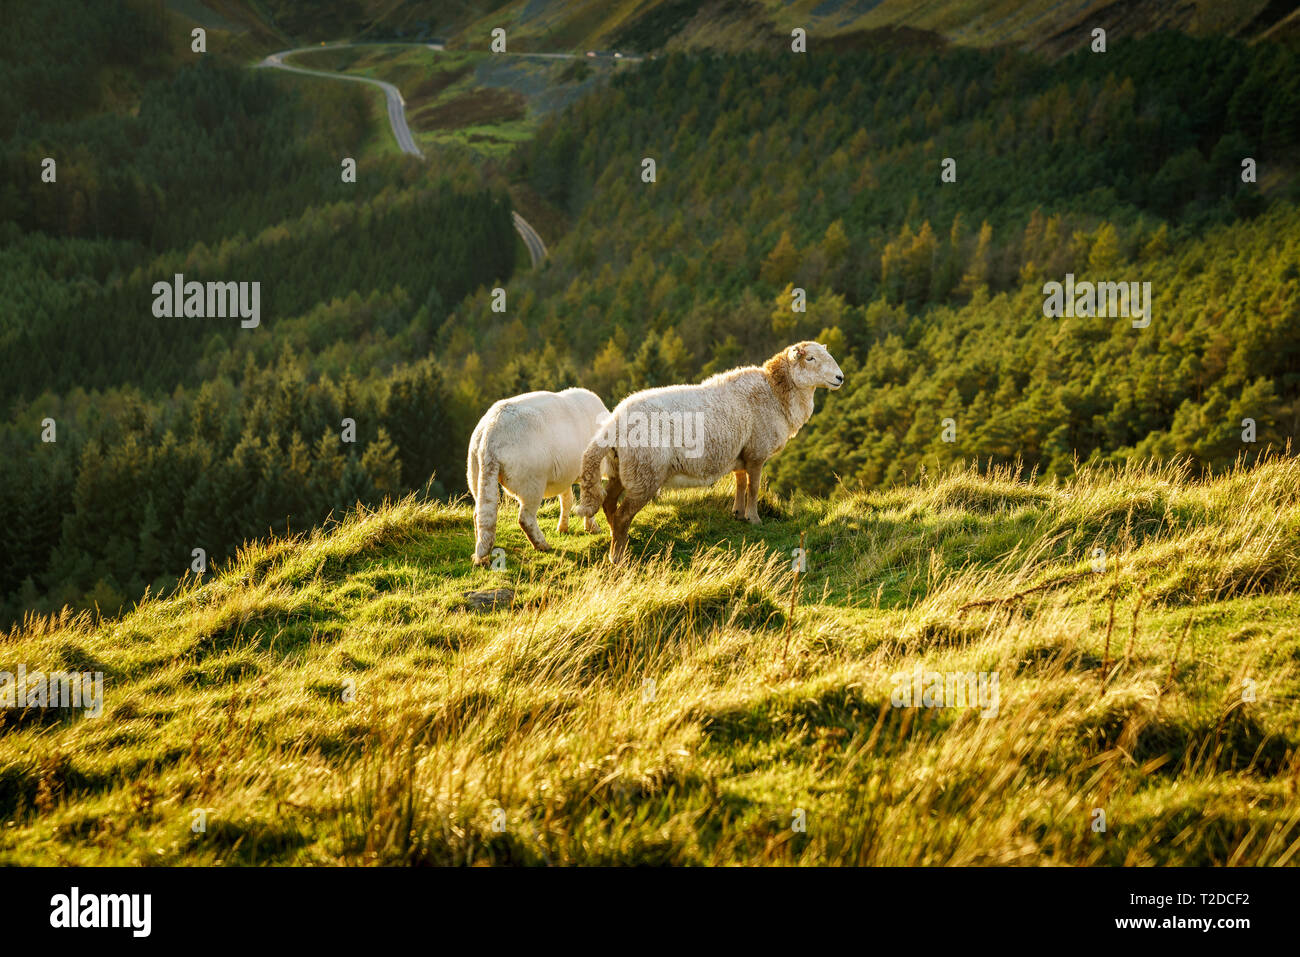 Sheep near Treorchy, overlooking the Ogmore Valley in Rhondda Cynon Taf, Mid Glamorgan, Wales, UK - Stock Image